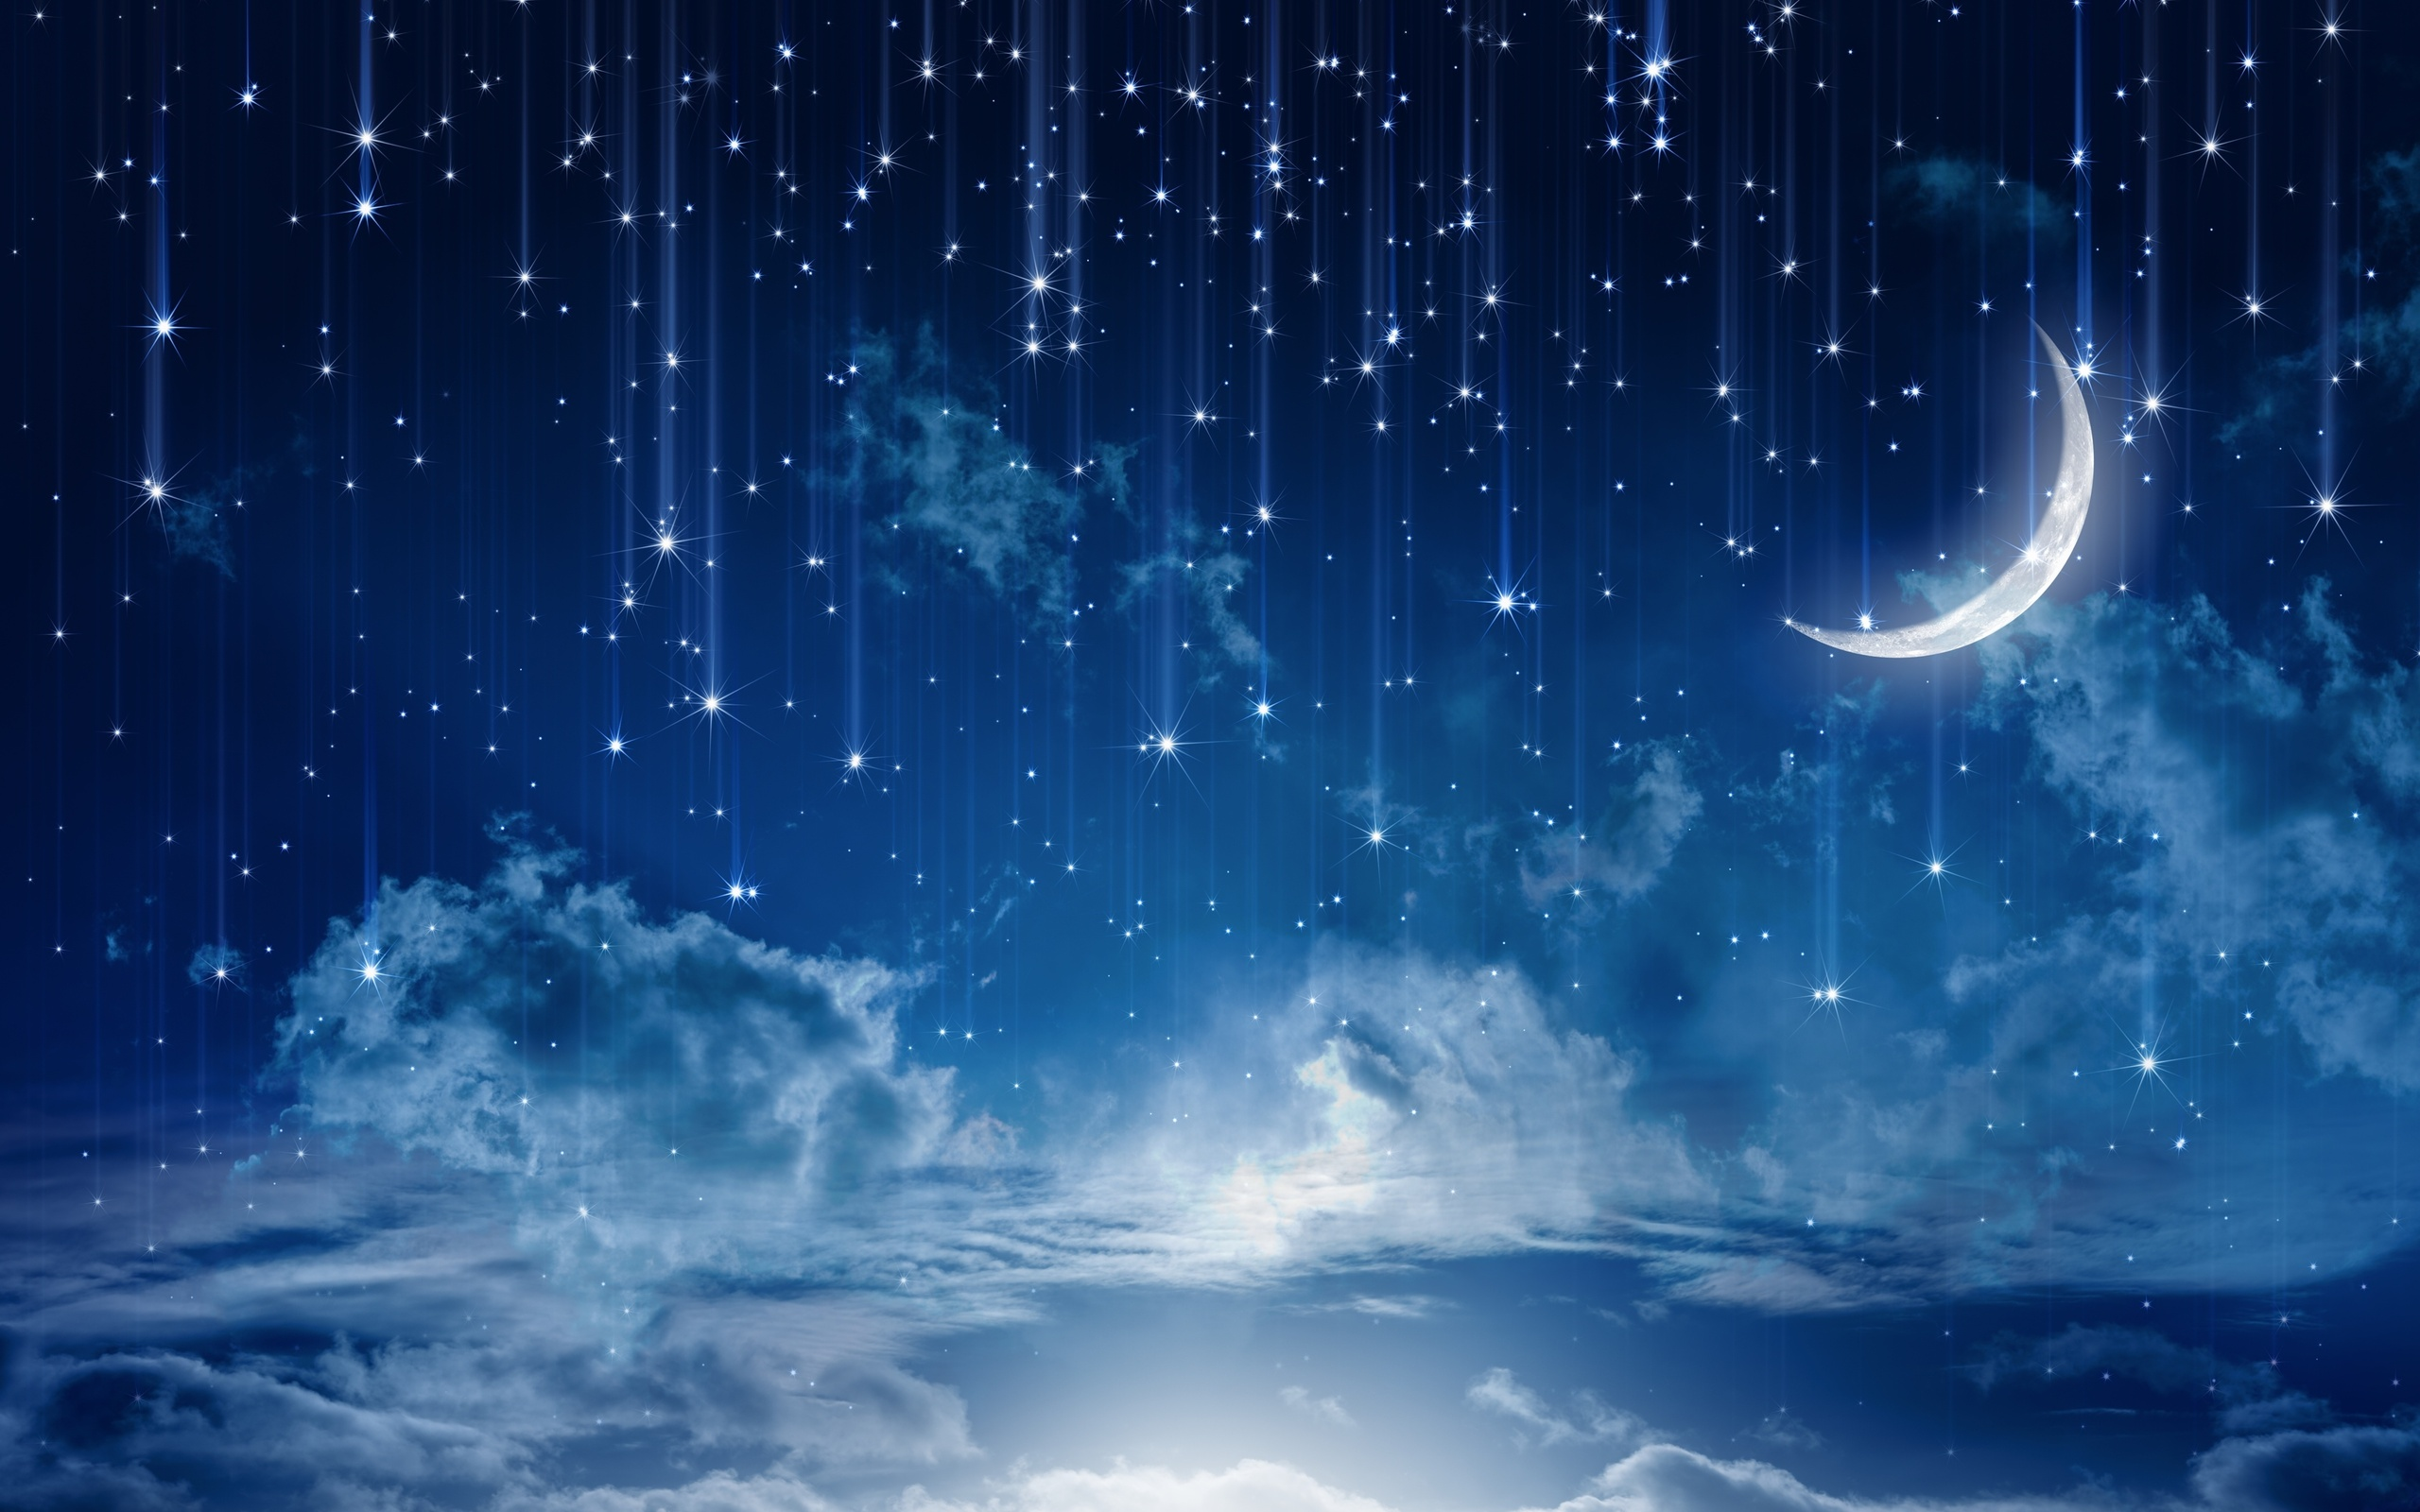 sky moonlight nature night stars clouds rain landscape moon wallpaper 2560x1600